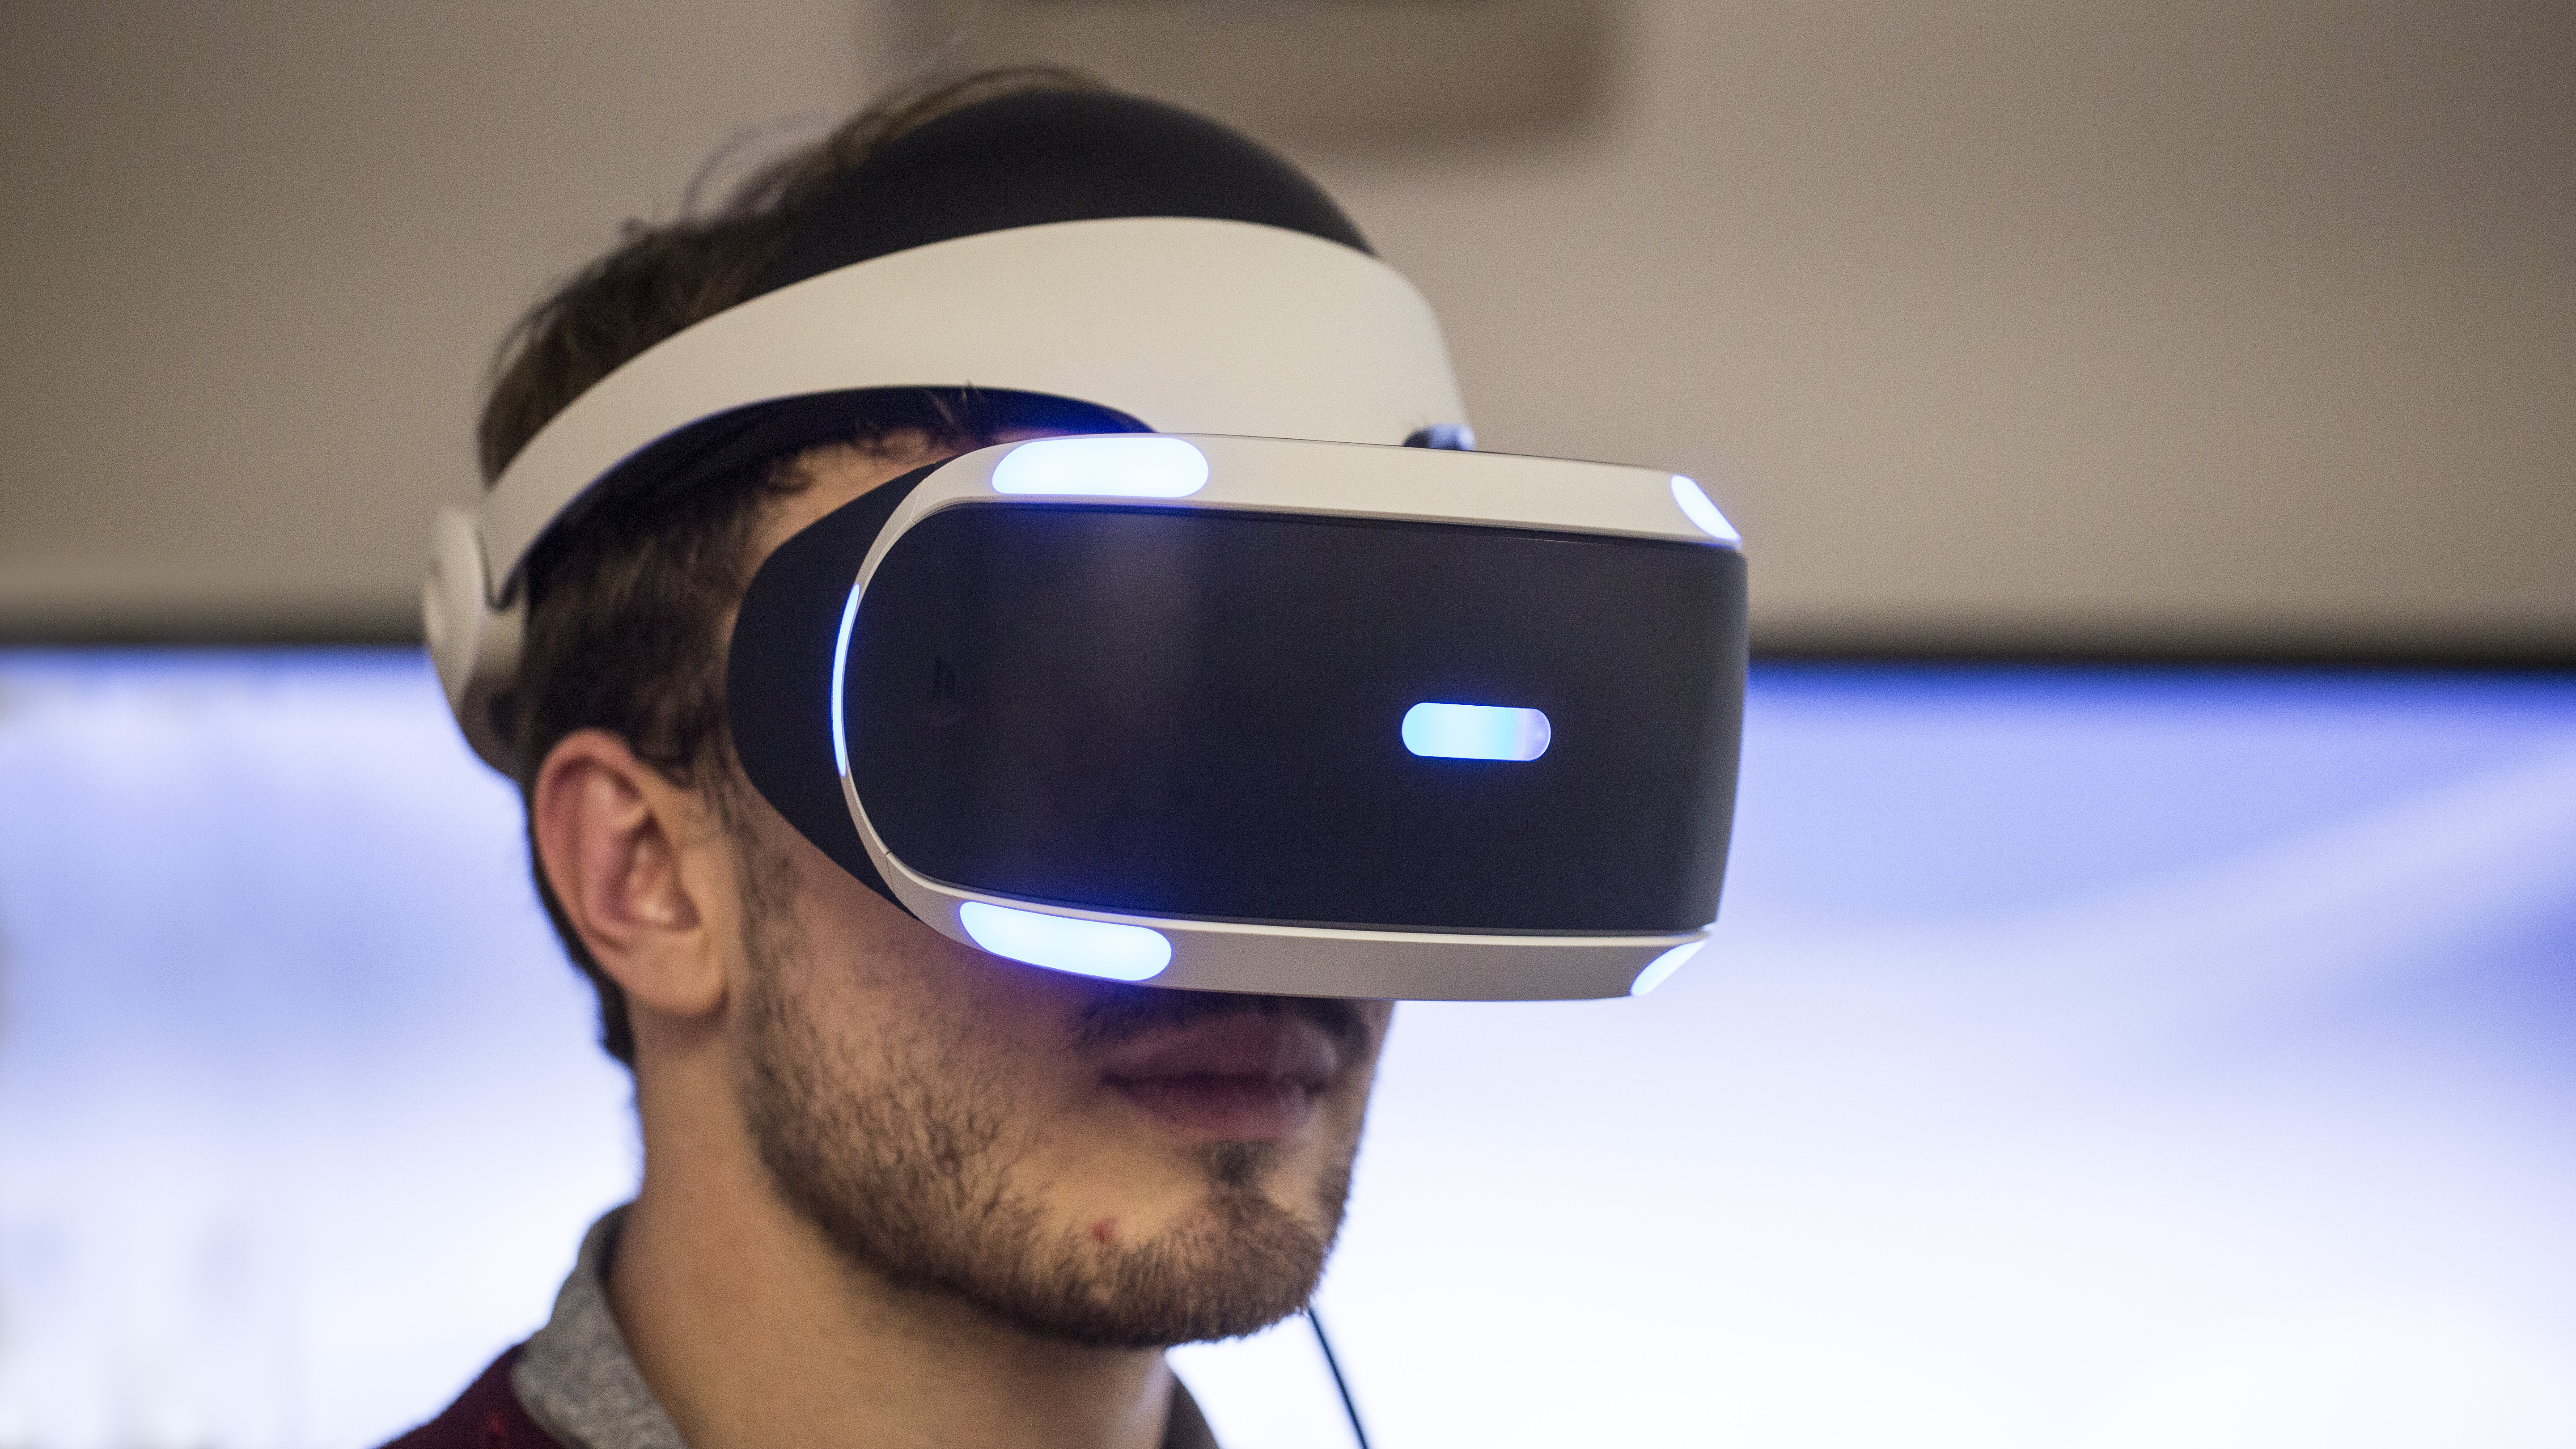 Playstation Vr Price Drop Here S How Much Sony Just Lowered The Cost Of Psvr Techradar